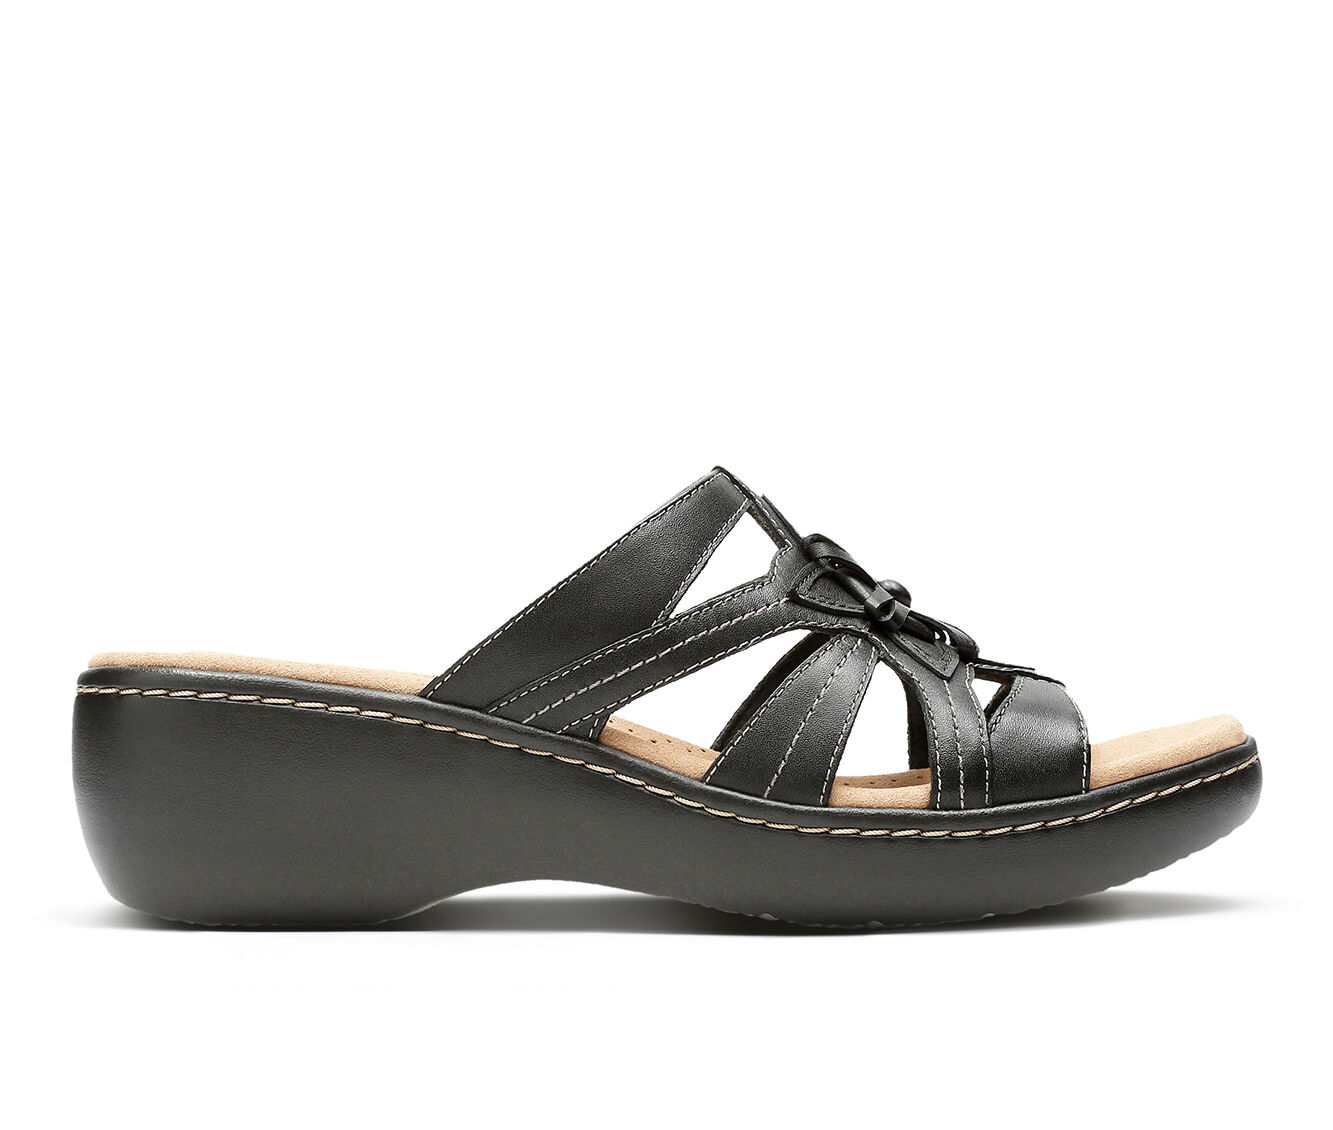 100% quality materials Women's Clarks Delana Venna Sandals Black Leather